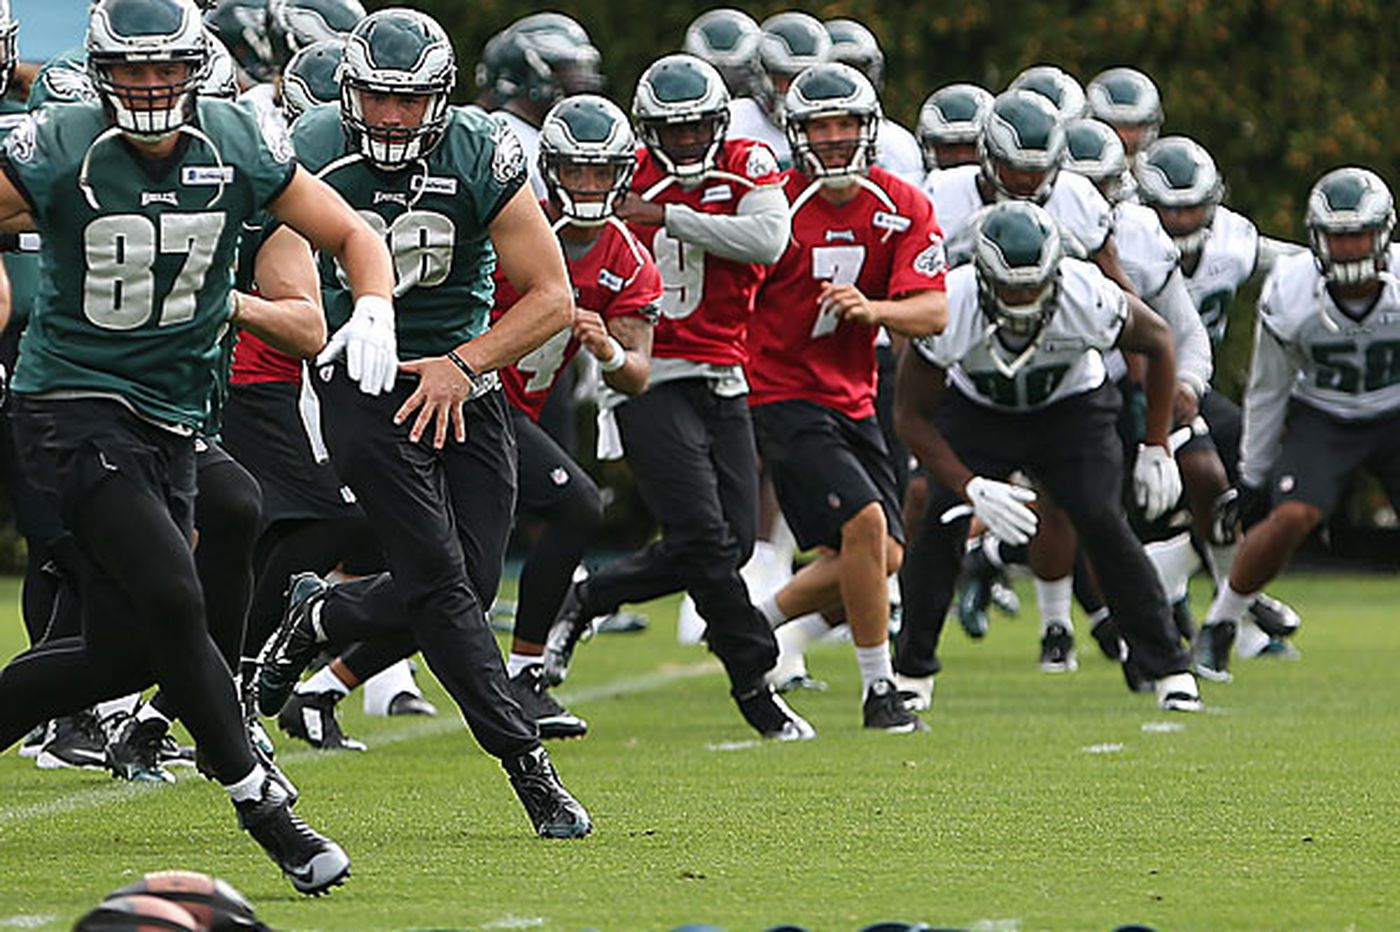 Hurricane has NFL considering schedule options for Eagles-Redskins